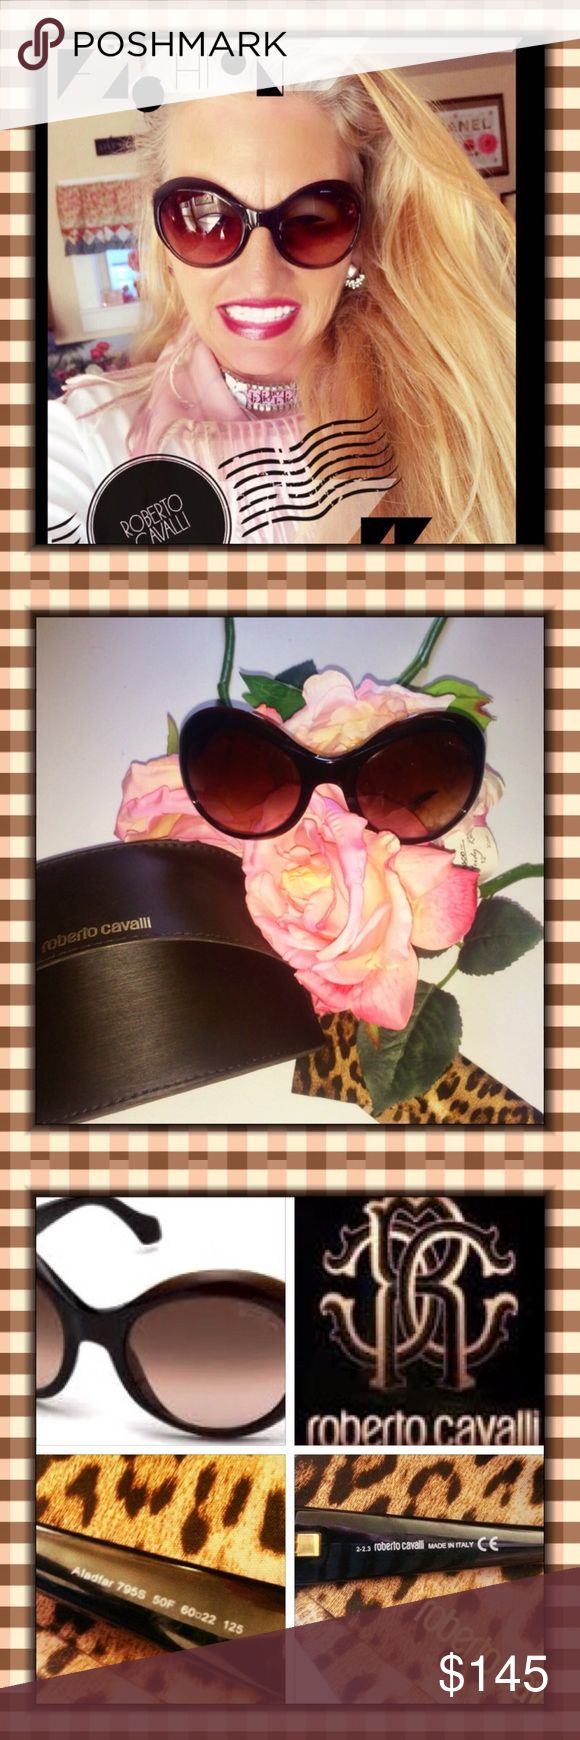 NWT ROBERTO CAVALLI ALADFAR OVERSIZED SUNGLASSES THIS IS AN INCREDIBLE PAIR OF OVERSIZED CAT EYE SUNGLASSES BY ROBERTO CAVALLI CALLED THE ALADFAR SUNGLASSES. BRAND NEW WITH CASE AND CLEANING CLOTH. IN PRISTINE NEW CONDITION. RETAIL VALUE IS $425.00. I ACTUALLY WON THEM ON A BIDDING SITE. FROM YEAR 2015. DARK BROWN FRAMES AND MAUVE GRADIENT LENSES. FRAME SHAPE IS OVAL AND THE FRAME AND LENS MATERIAL IS PLASTIC. 💯 % UV PROTECTION. Roberto Cavalli Accessories Sunglasses